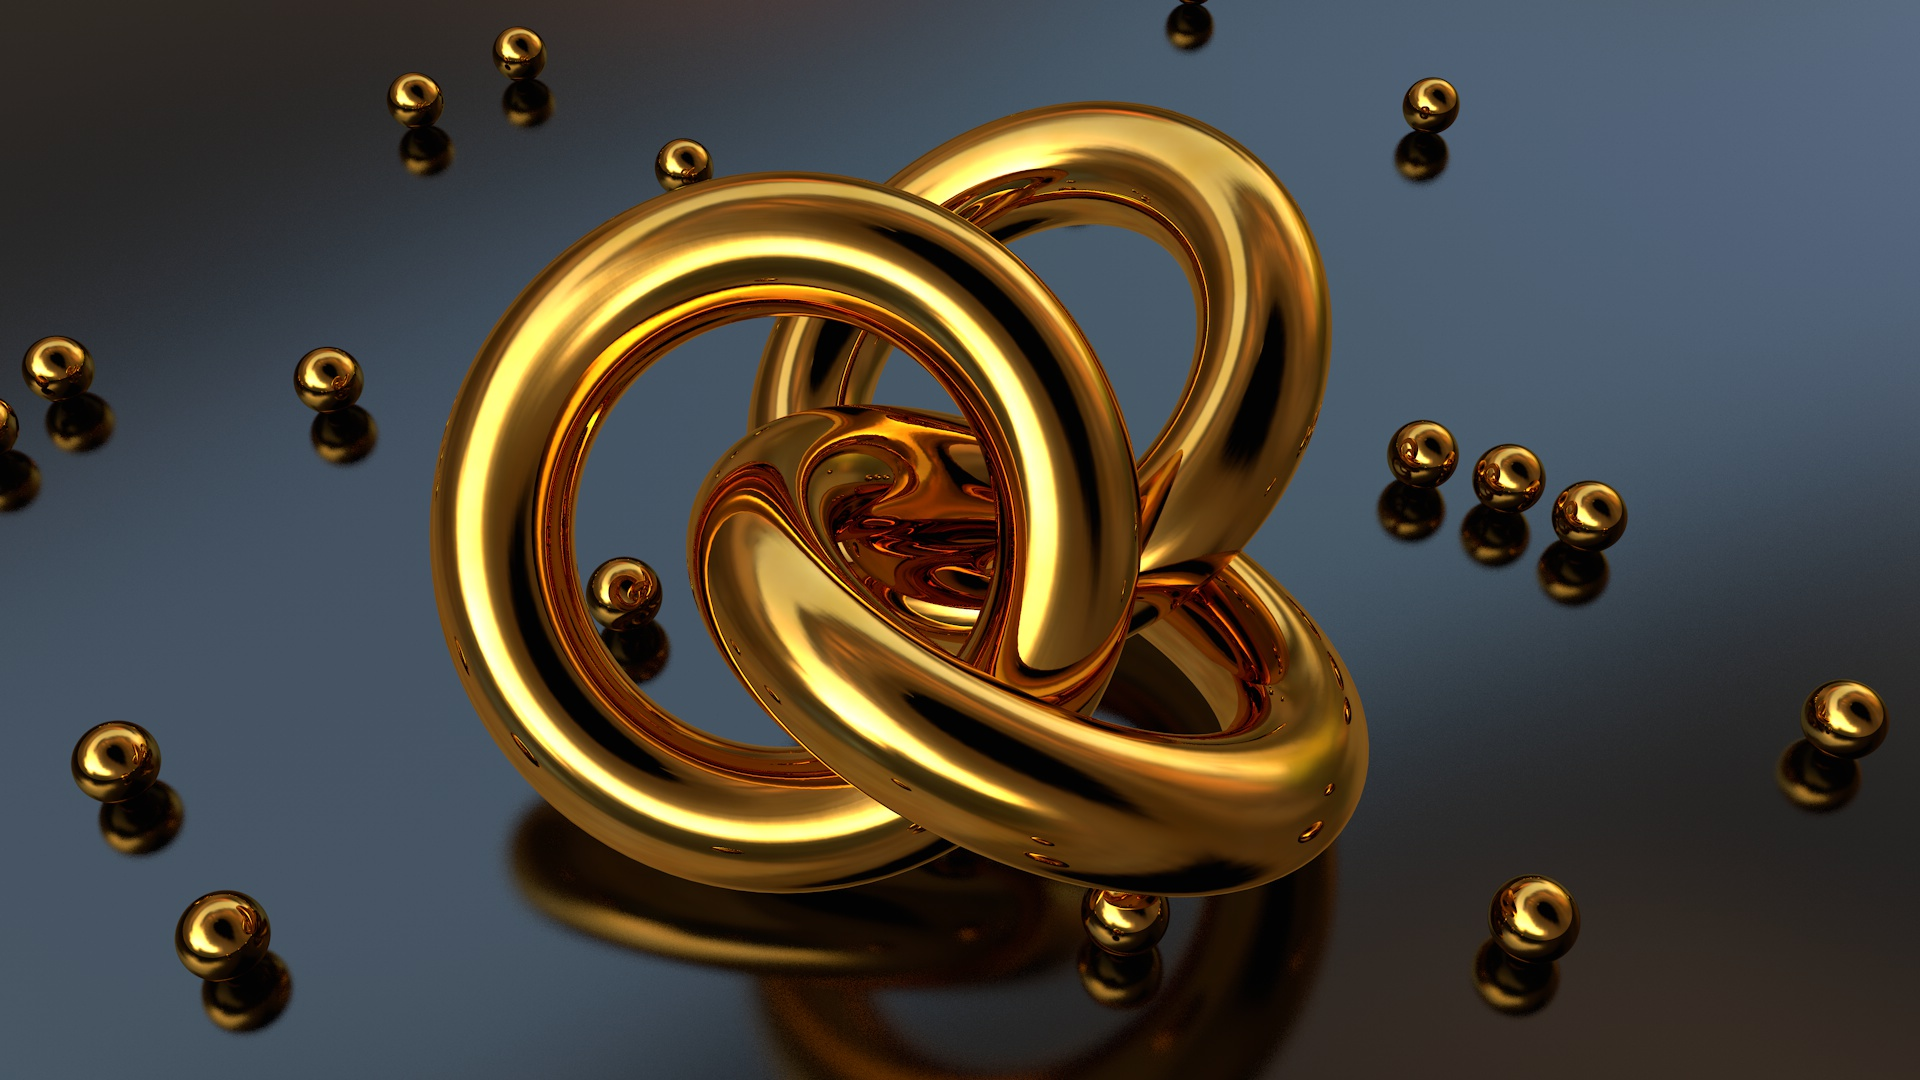 Cinema 4D - Ultra Realistic Gold Material Tutorial - Fattu Tutorials